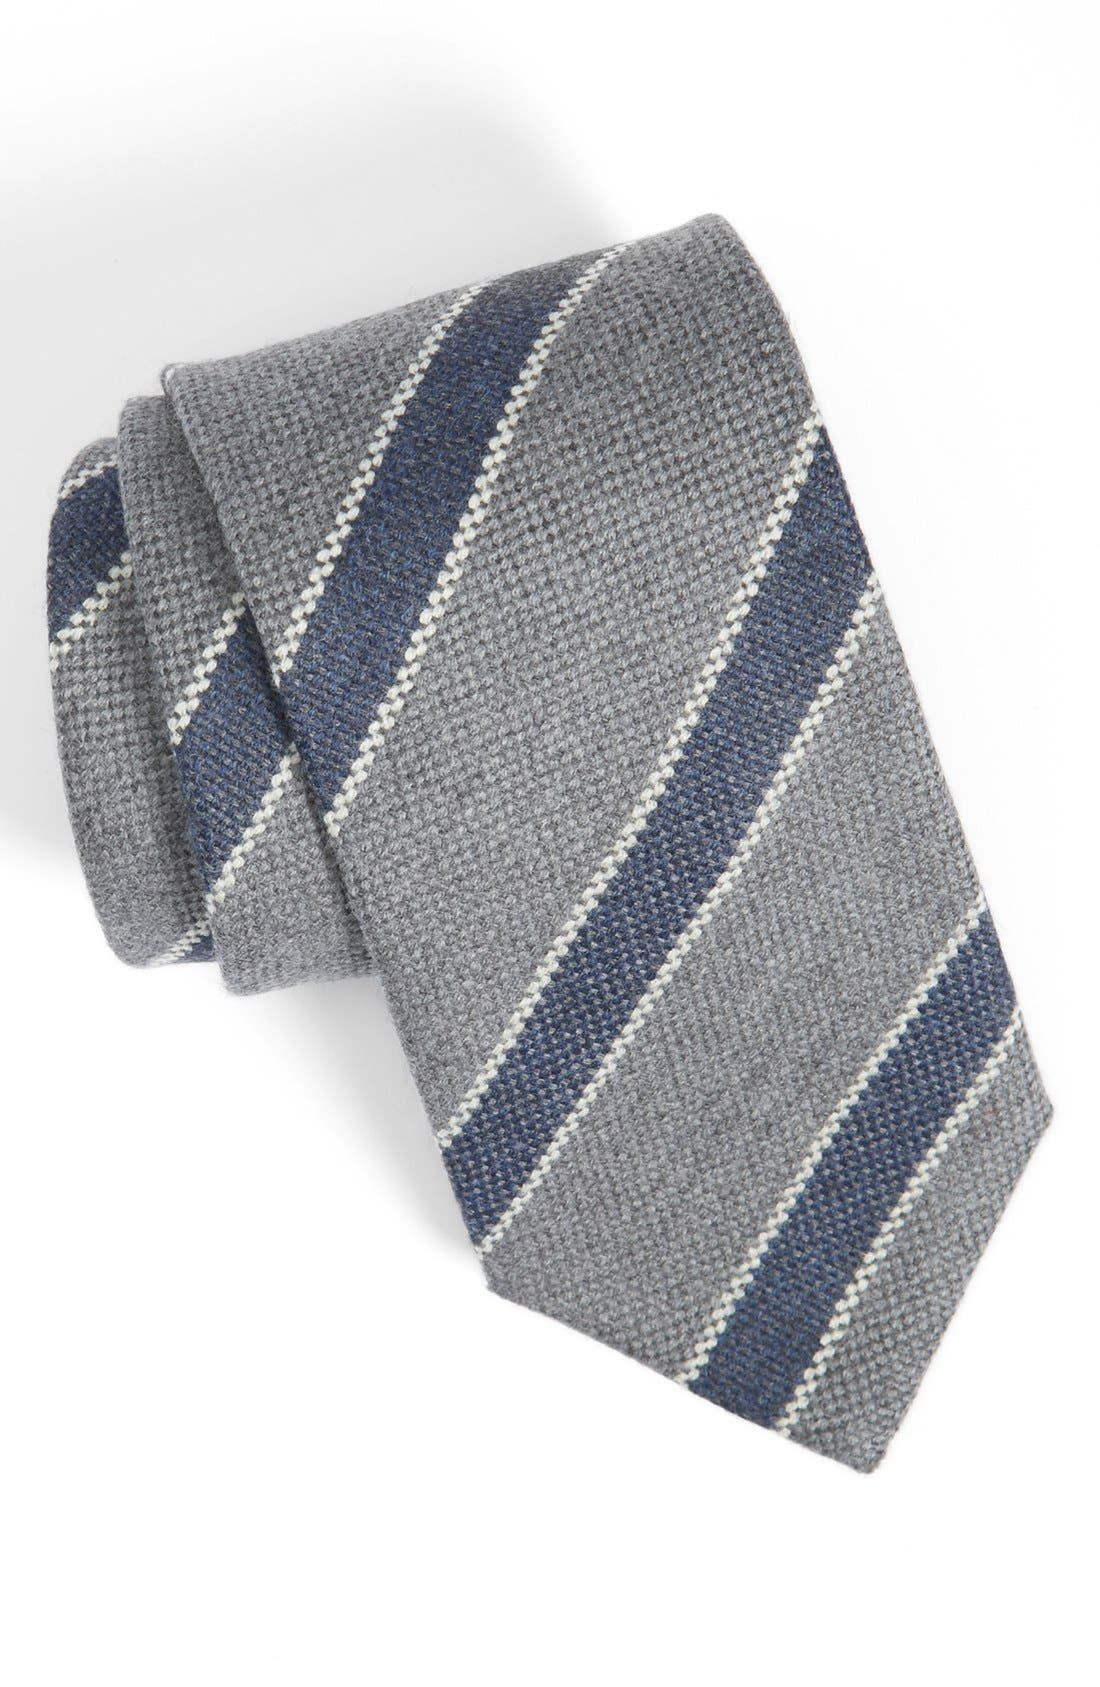 Alternate Image 1 Selected - Peter Millar Woven Wool Tie